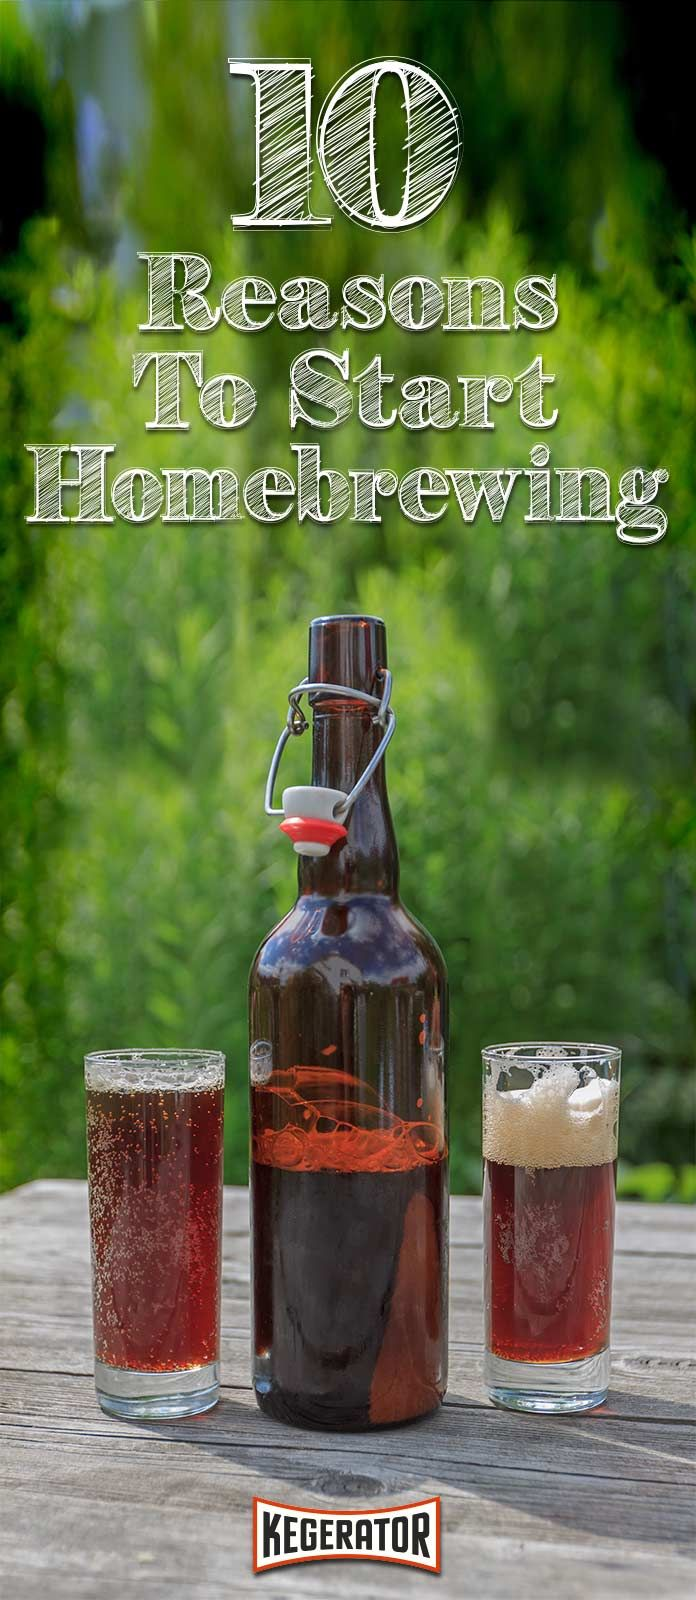 10 Reasons To Start Homebrewing 169 best